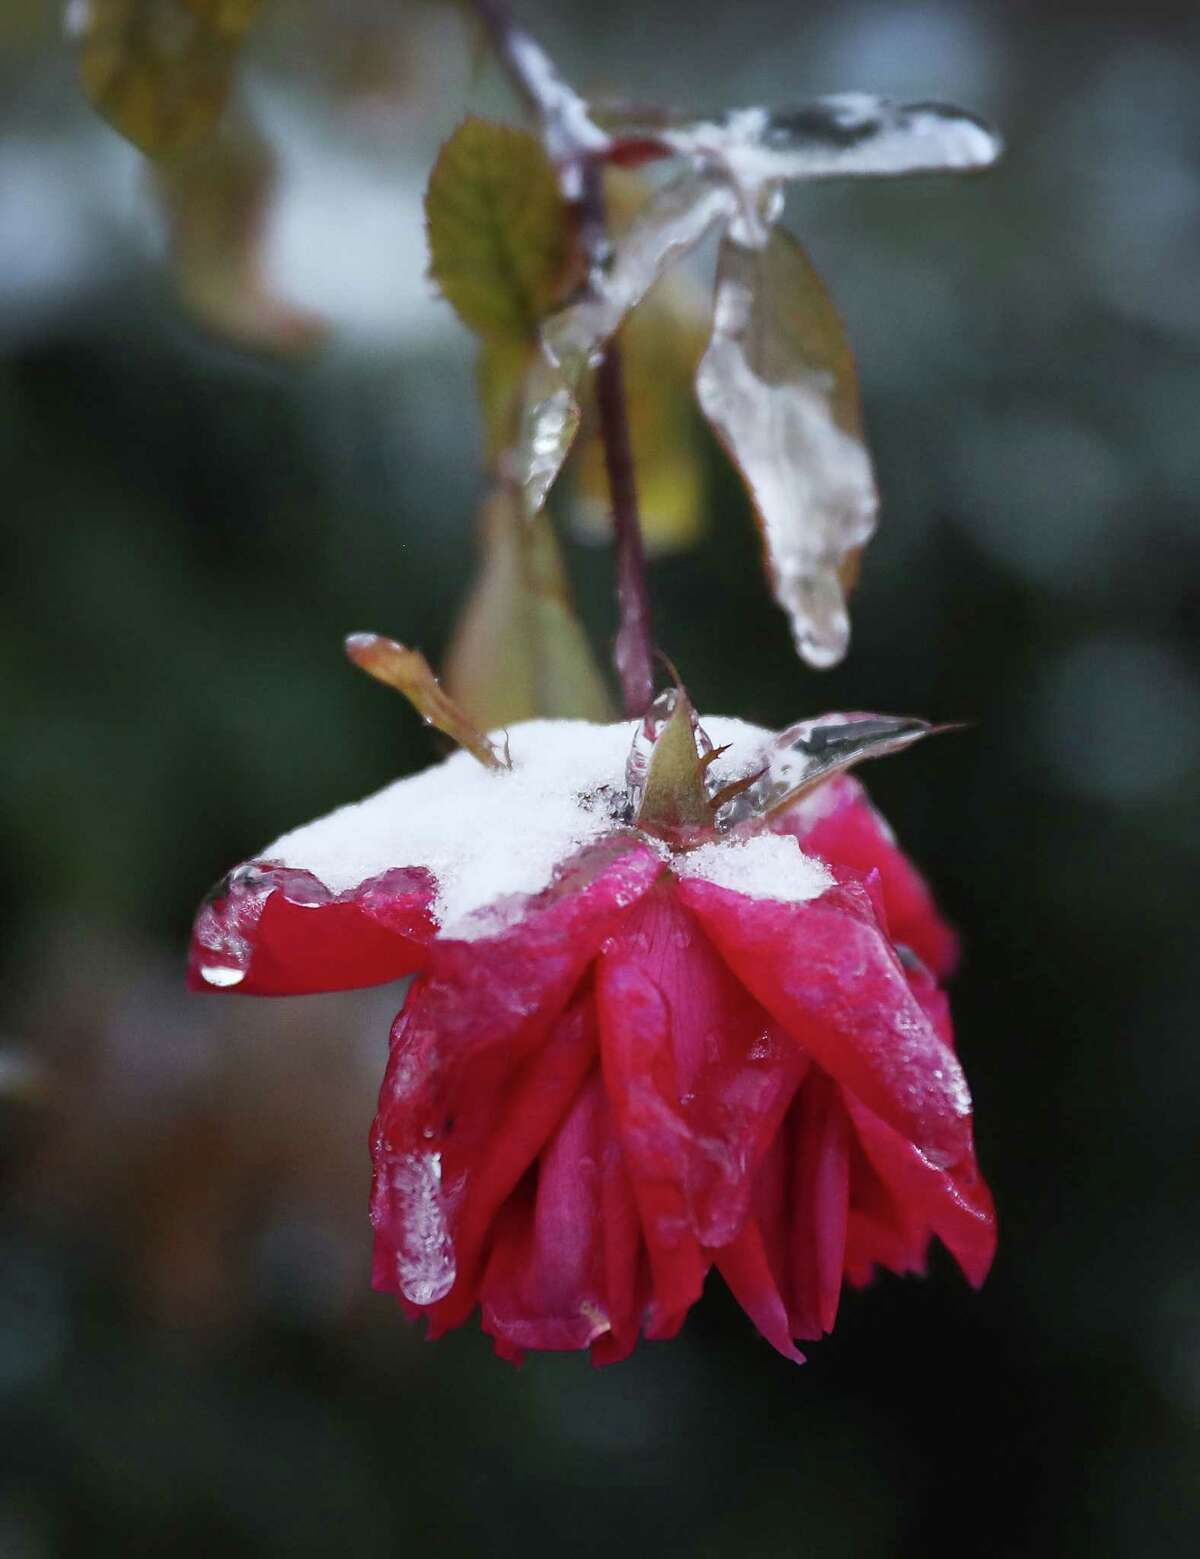 The winter storm that moved through the area left plants, like this rose, covered with ice.